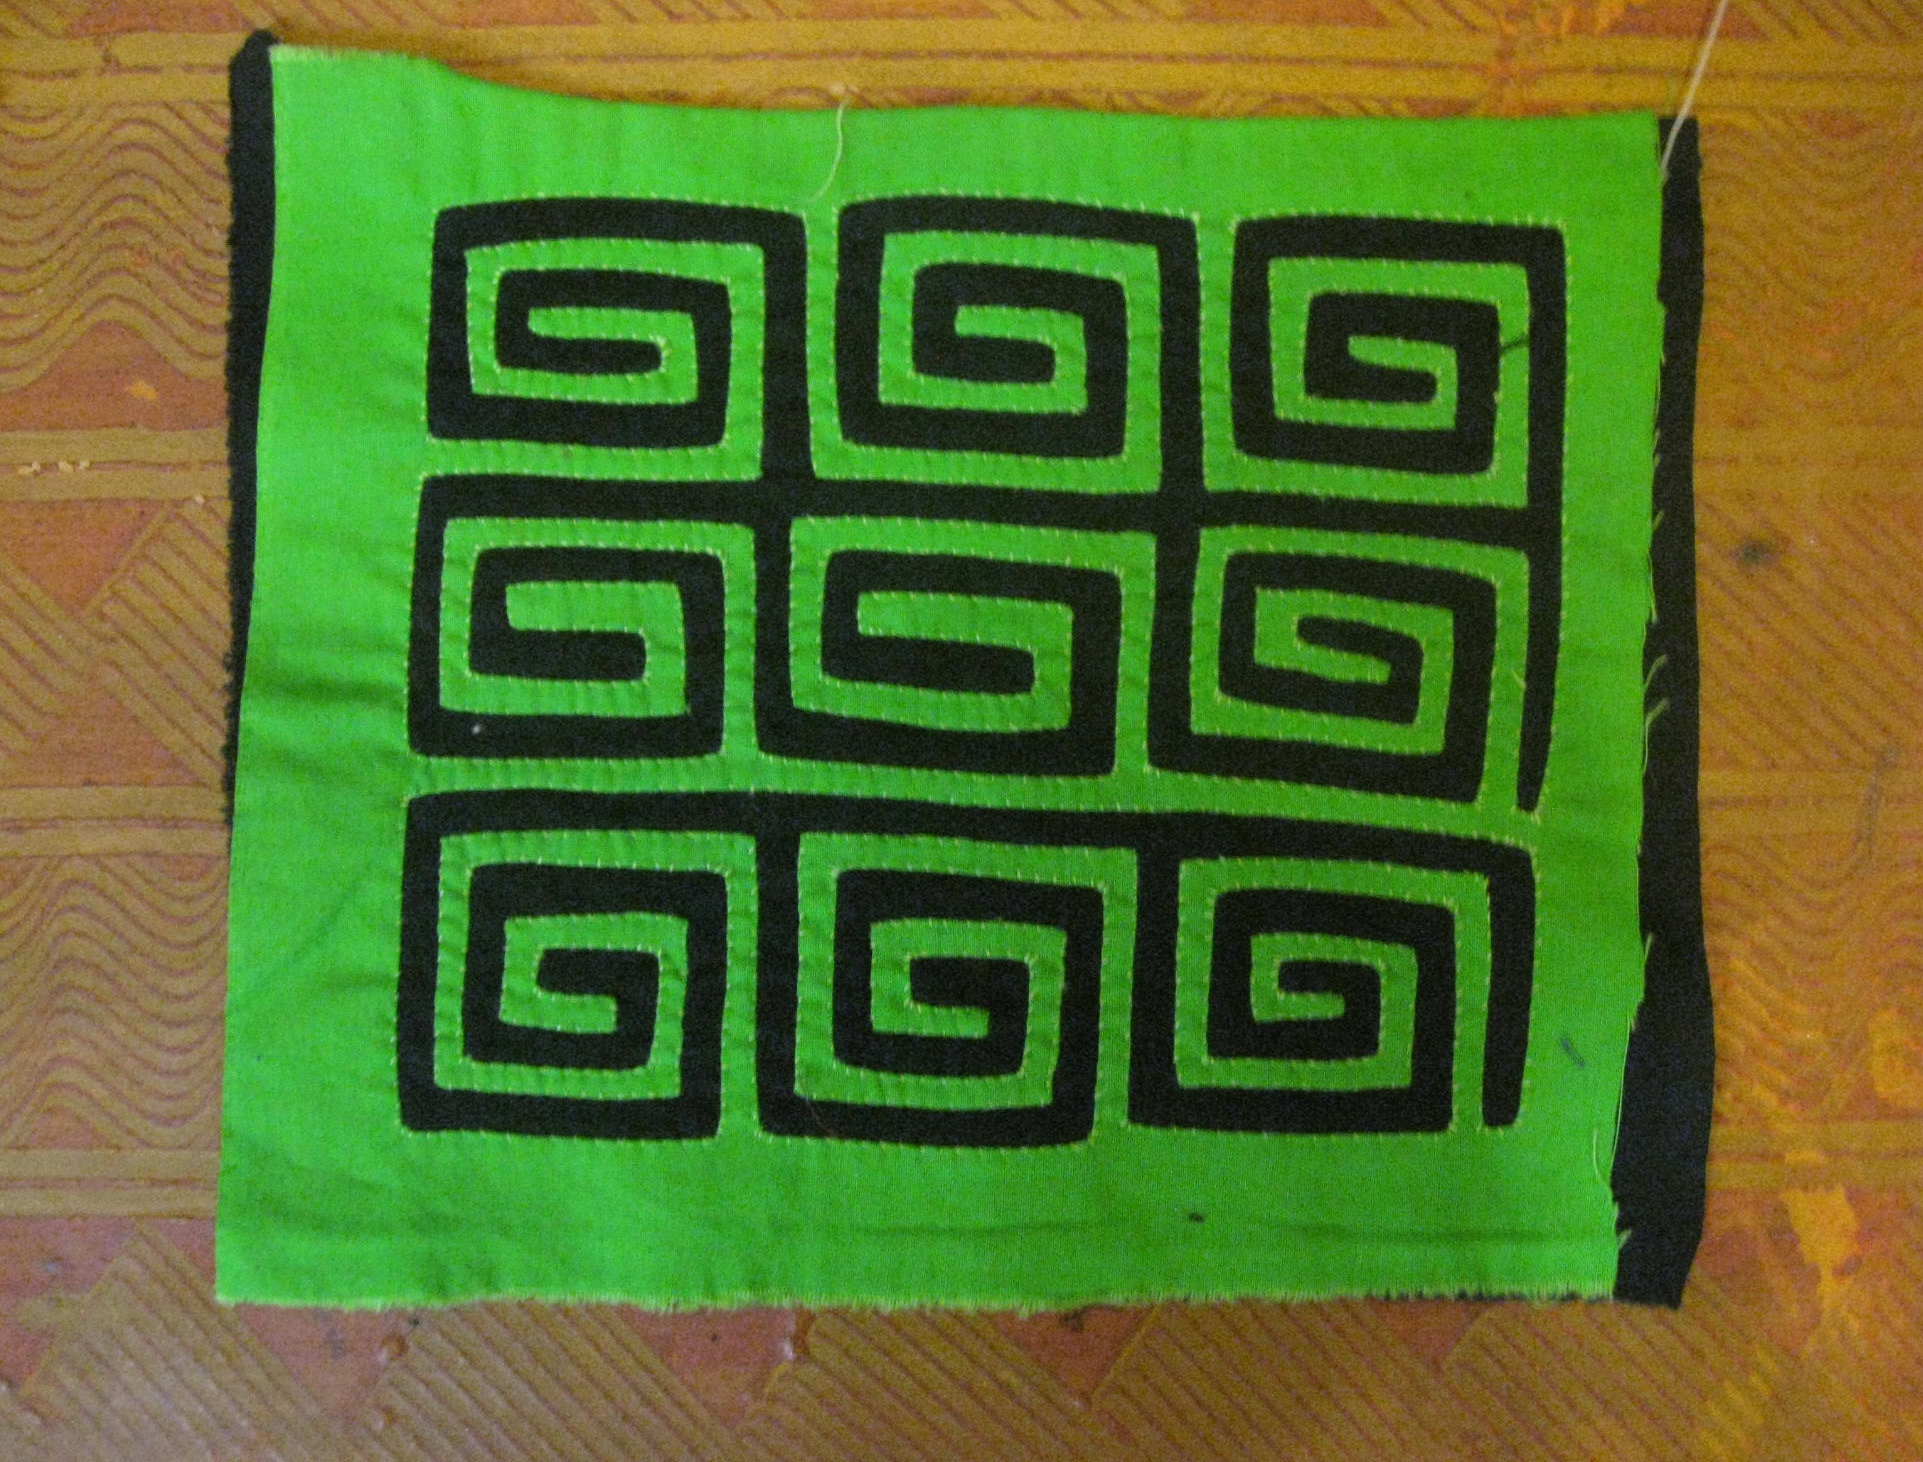 Molas from Panama